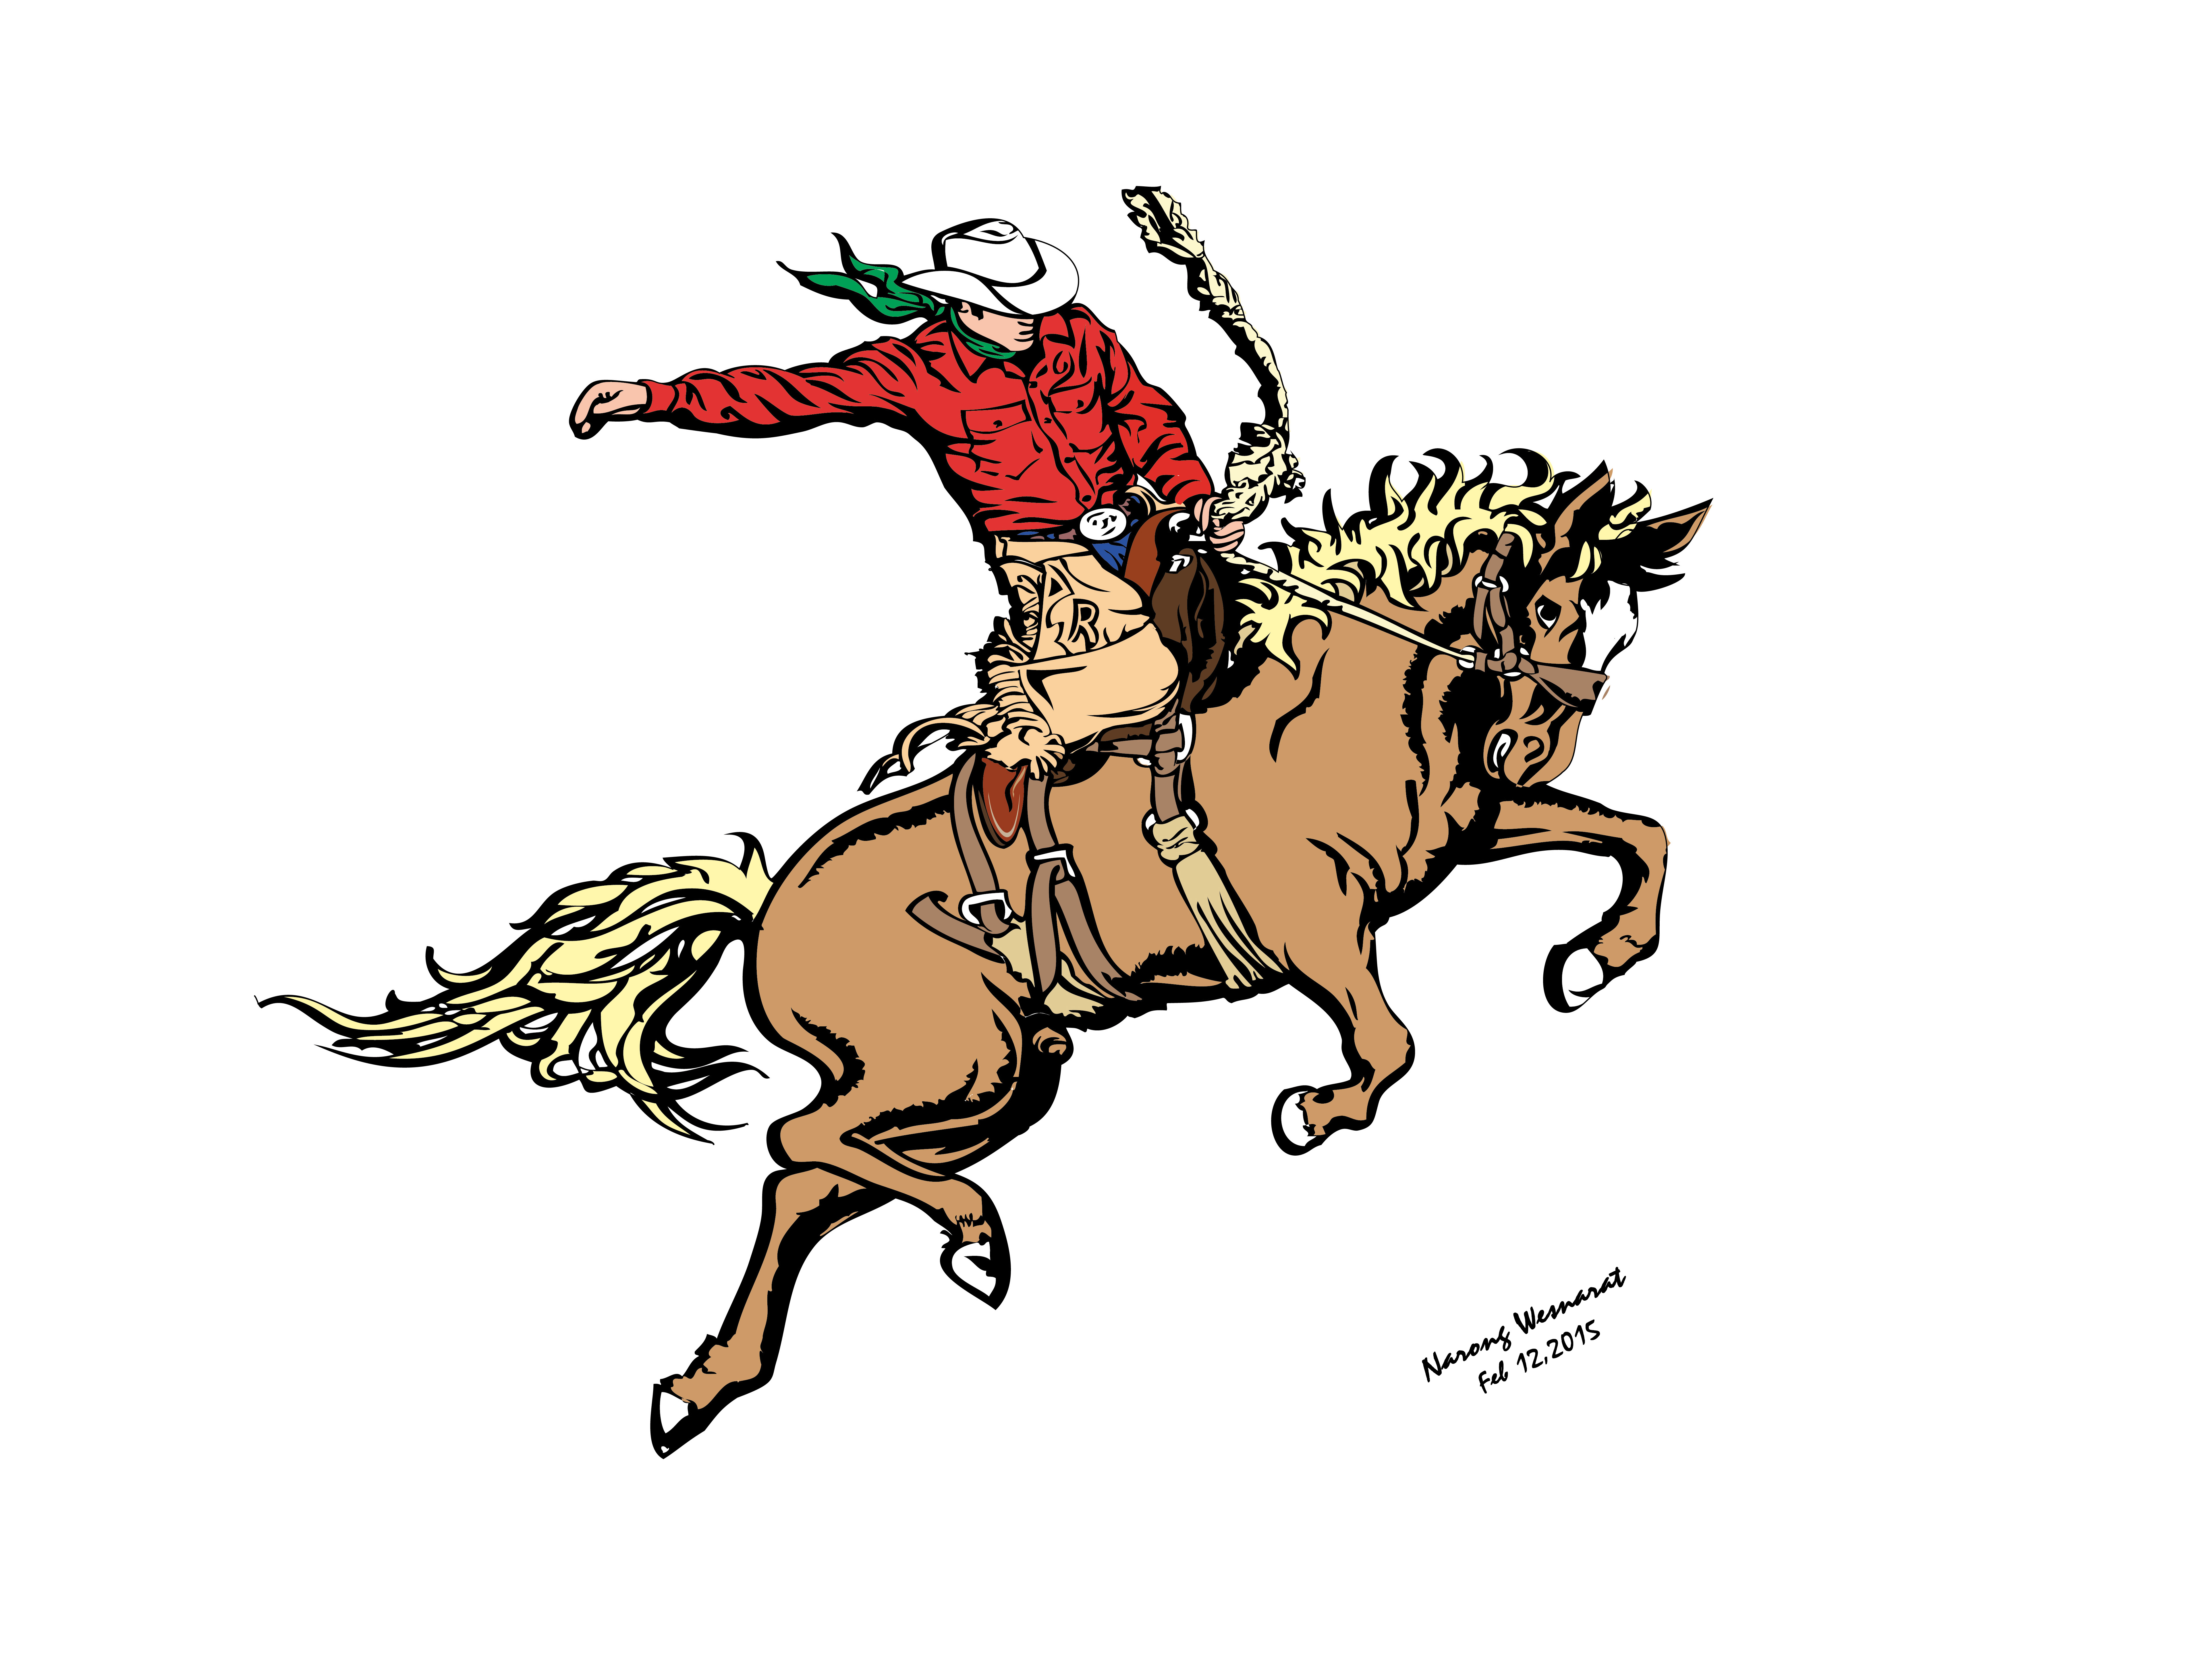 4 RedShirt SaddleBronc Action10 2015a